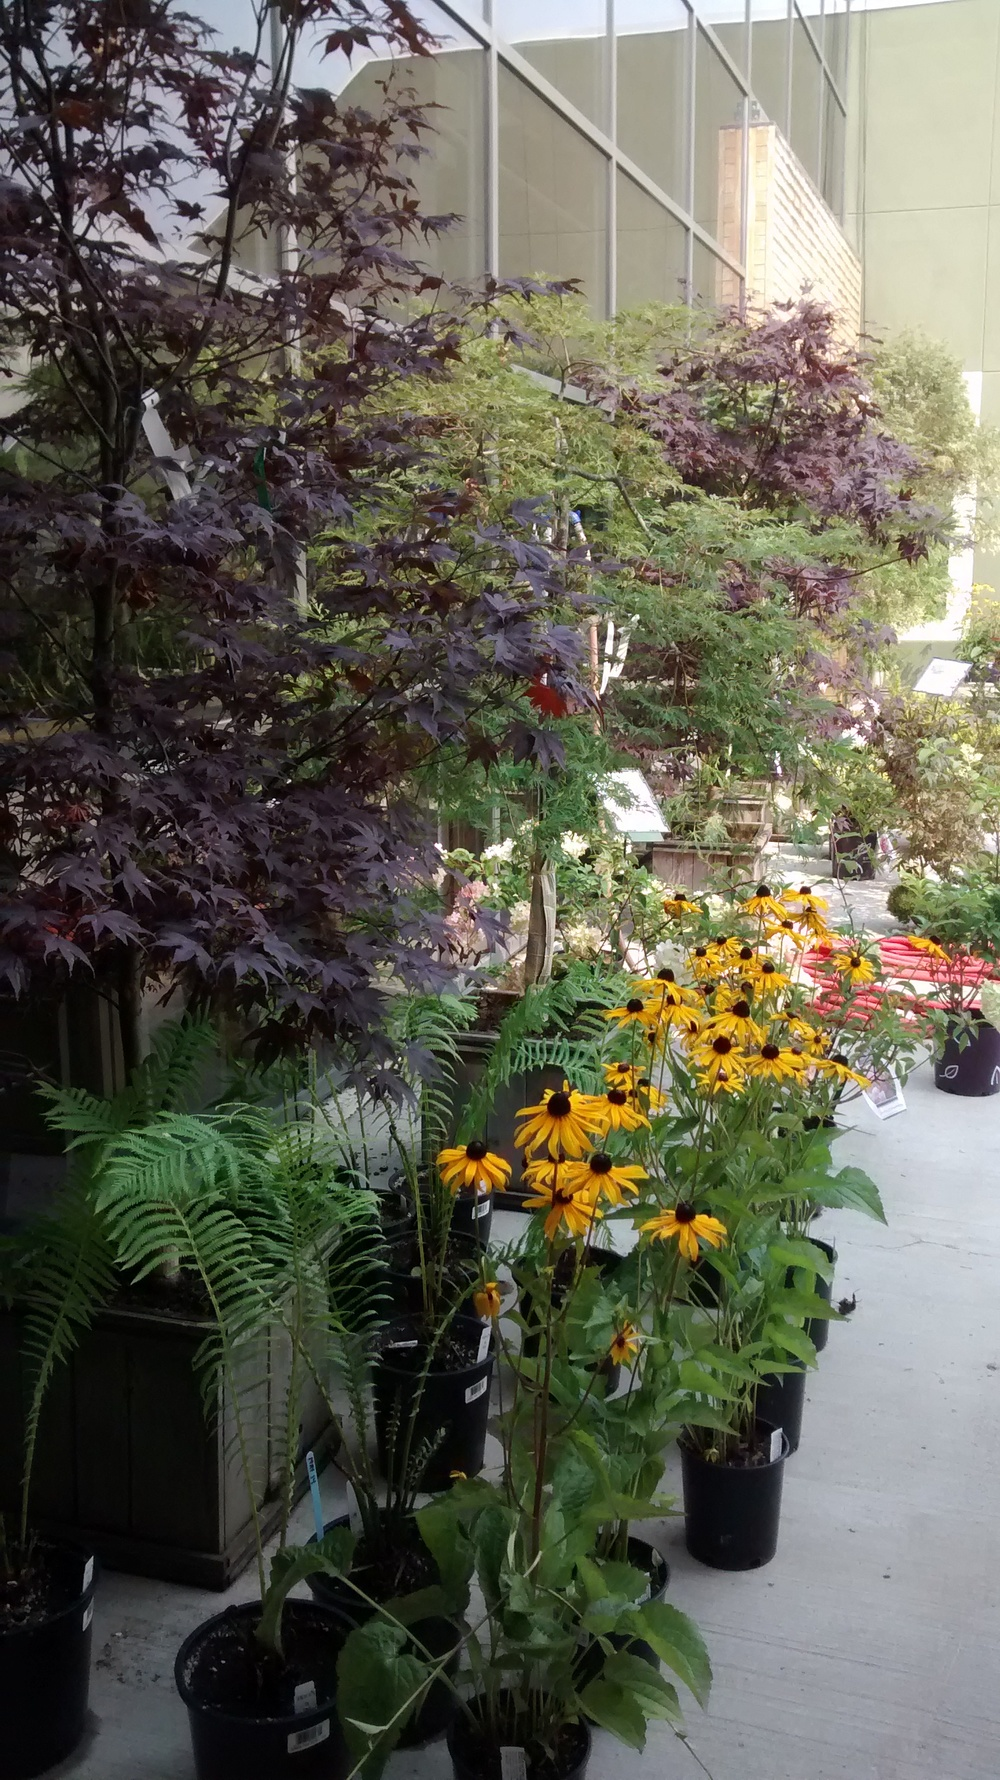 Japanese Maples and Brown Eyed Susans